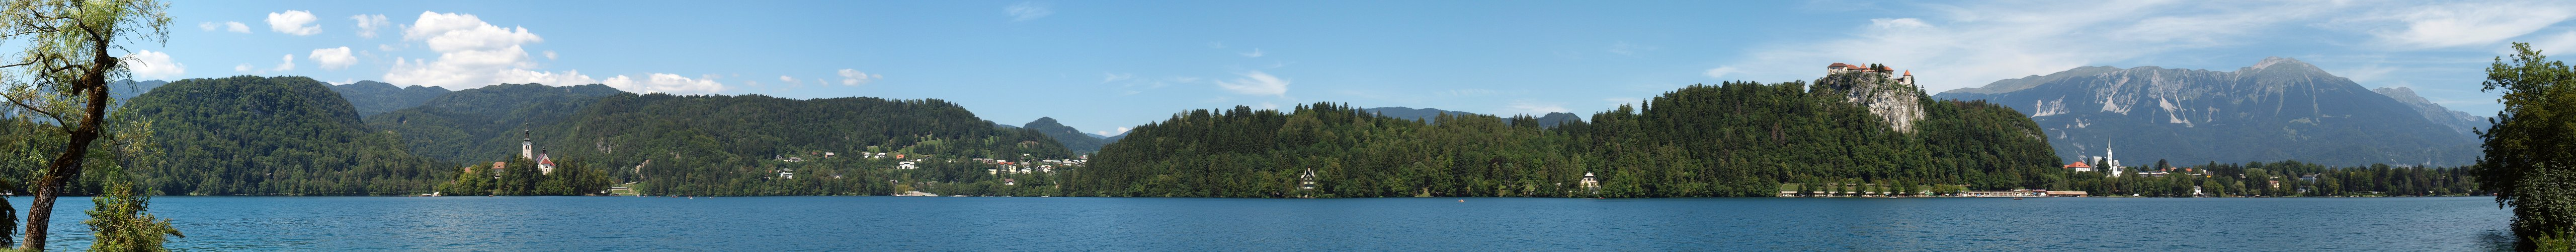 Sommertag in Bled